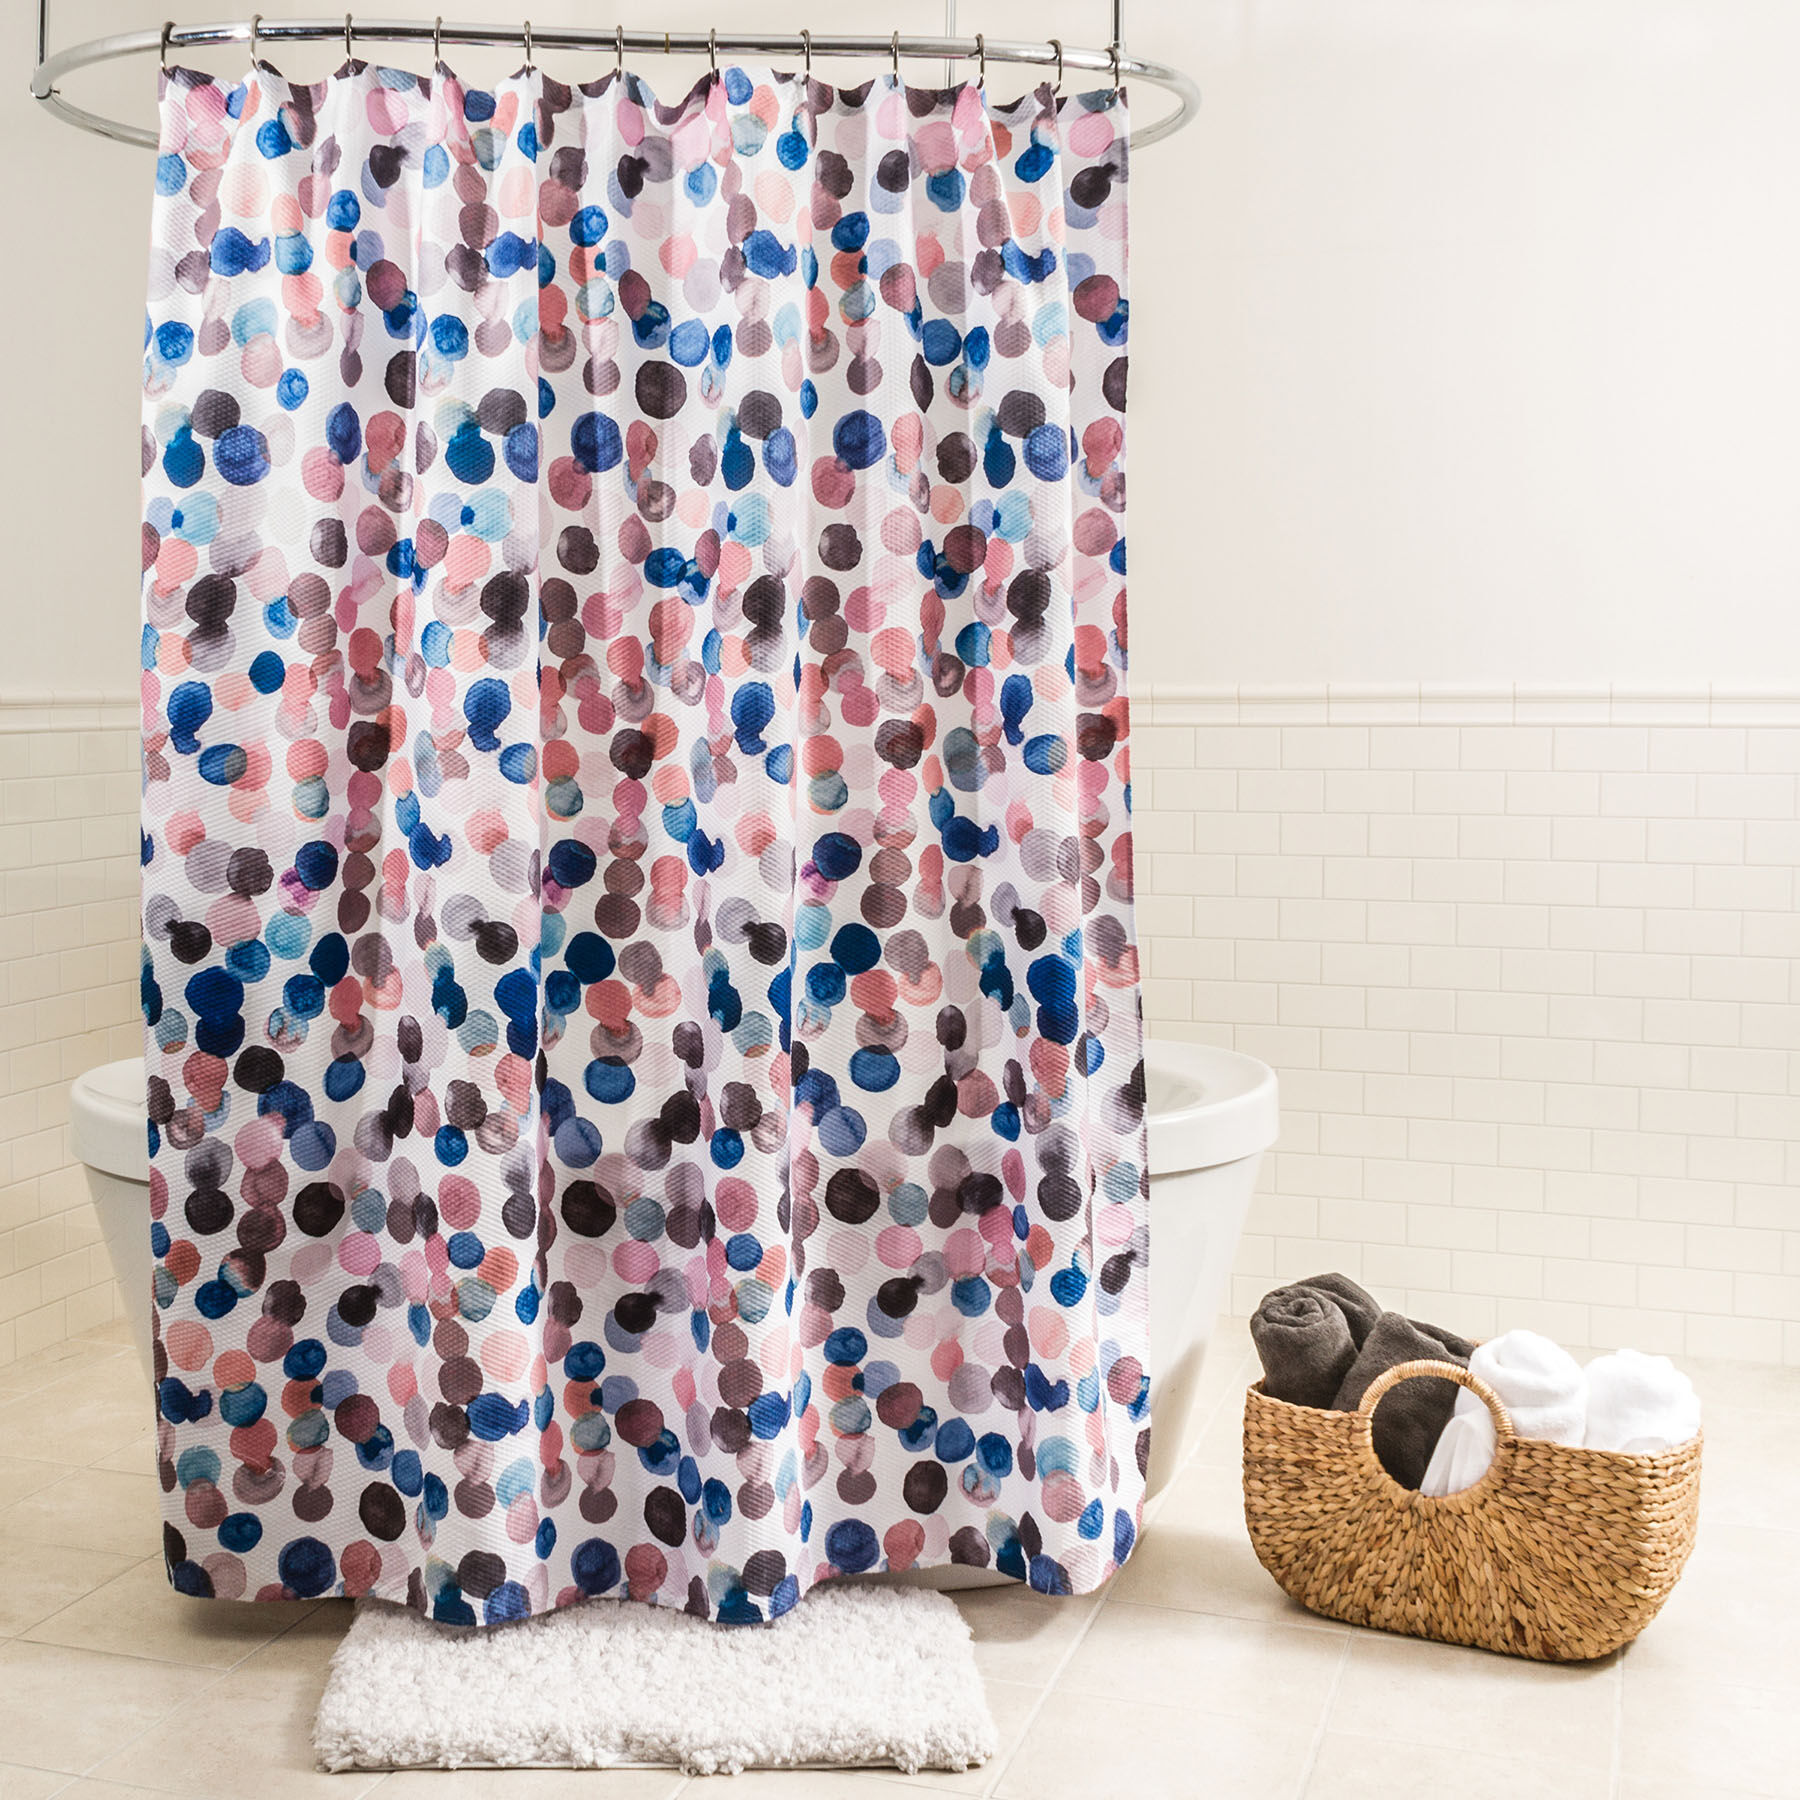 Multicolored Splash Dots Fabric Shower Curtain At Home